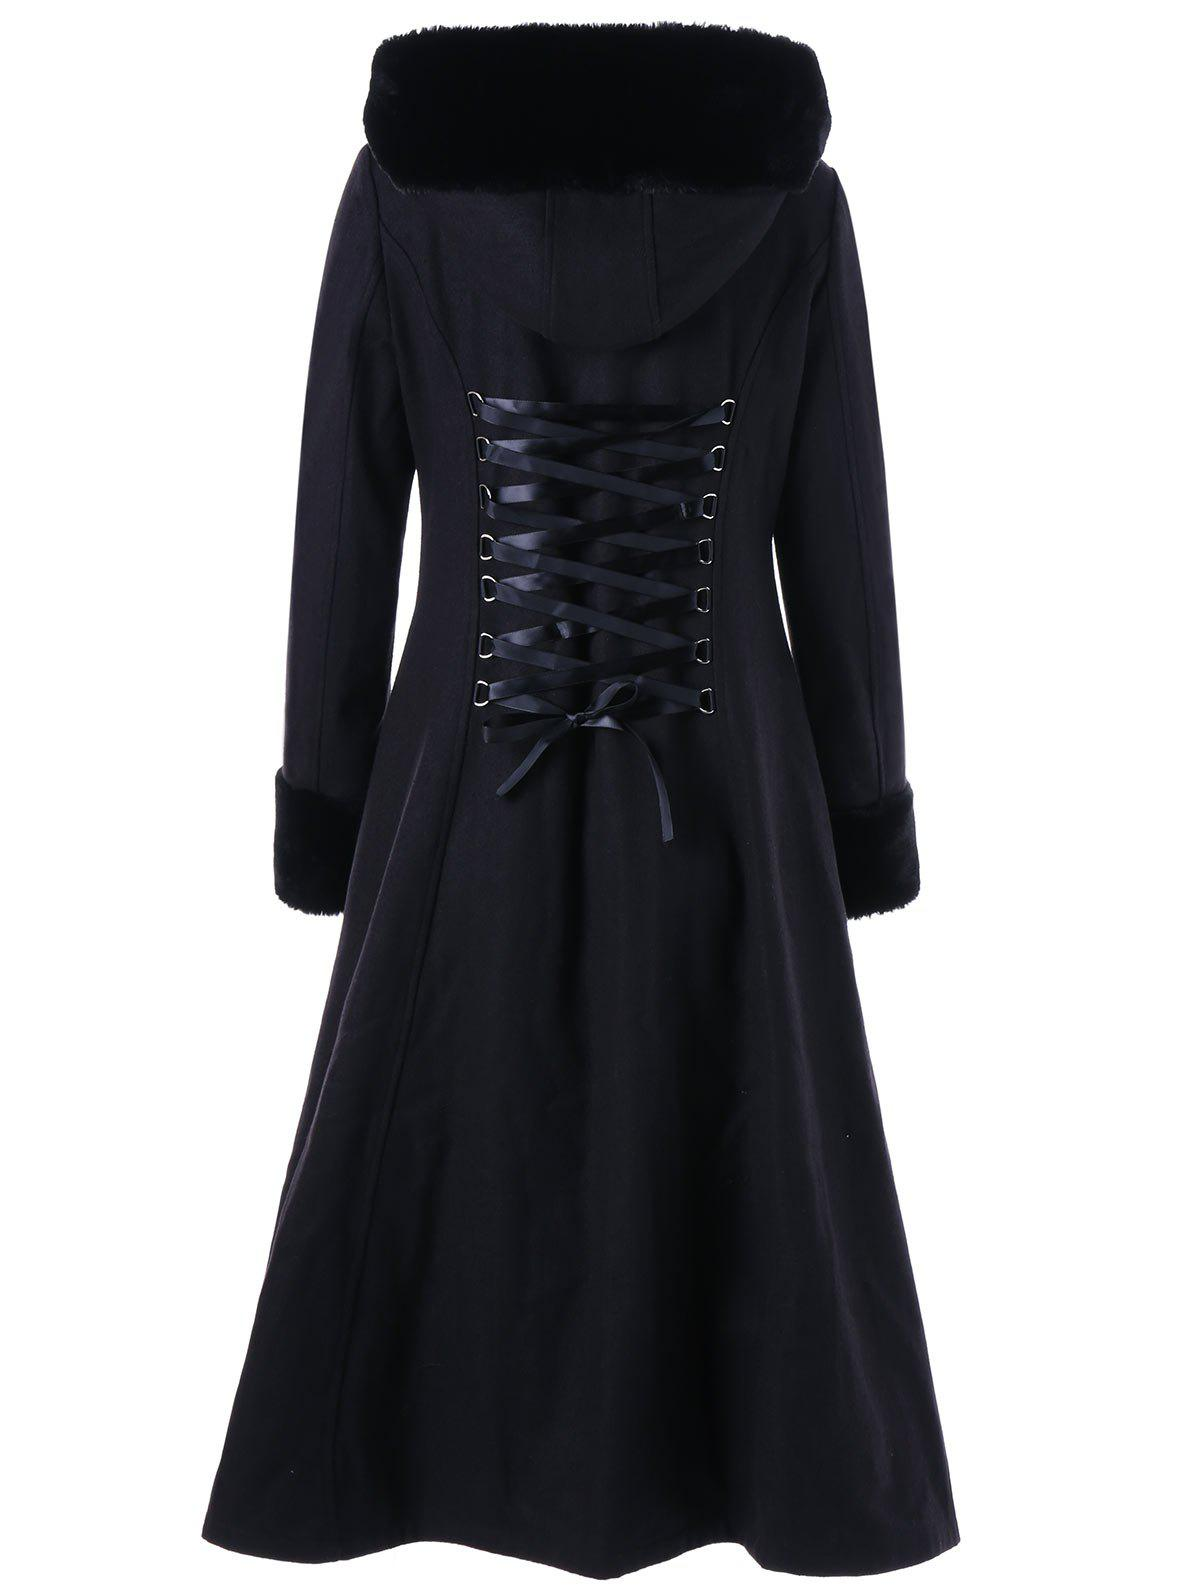 Hooded Longline Lace Up CoatWOMEN<br><br>Size: XL; Color: BLACK; Clothes Type: Wool &amp; Blends; Material: Polyester; Type: Slim; Shirt Length: Long; Sleeve Length: Full; Collar: Hooded; Pattern Type: Solid; Style: Gothic; Season: Fall,Spring,Winter; Weight: 1.2450kg; Package Contents: 1 x Coat;